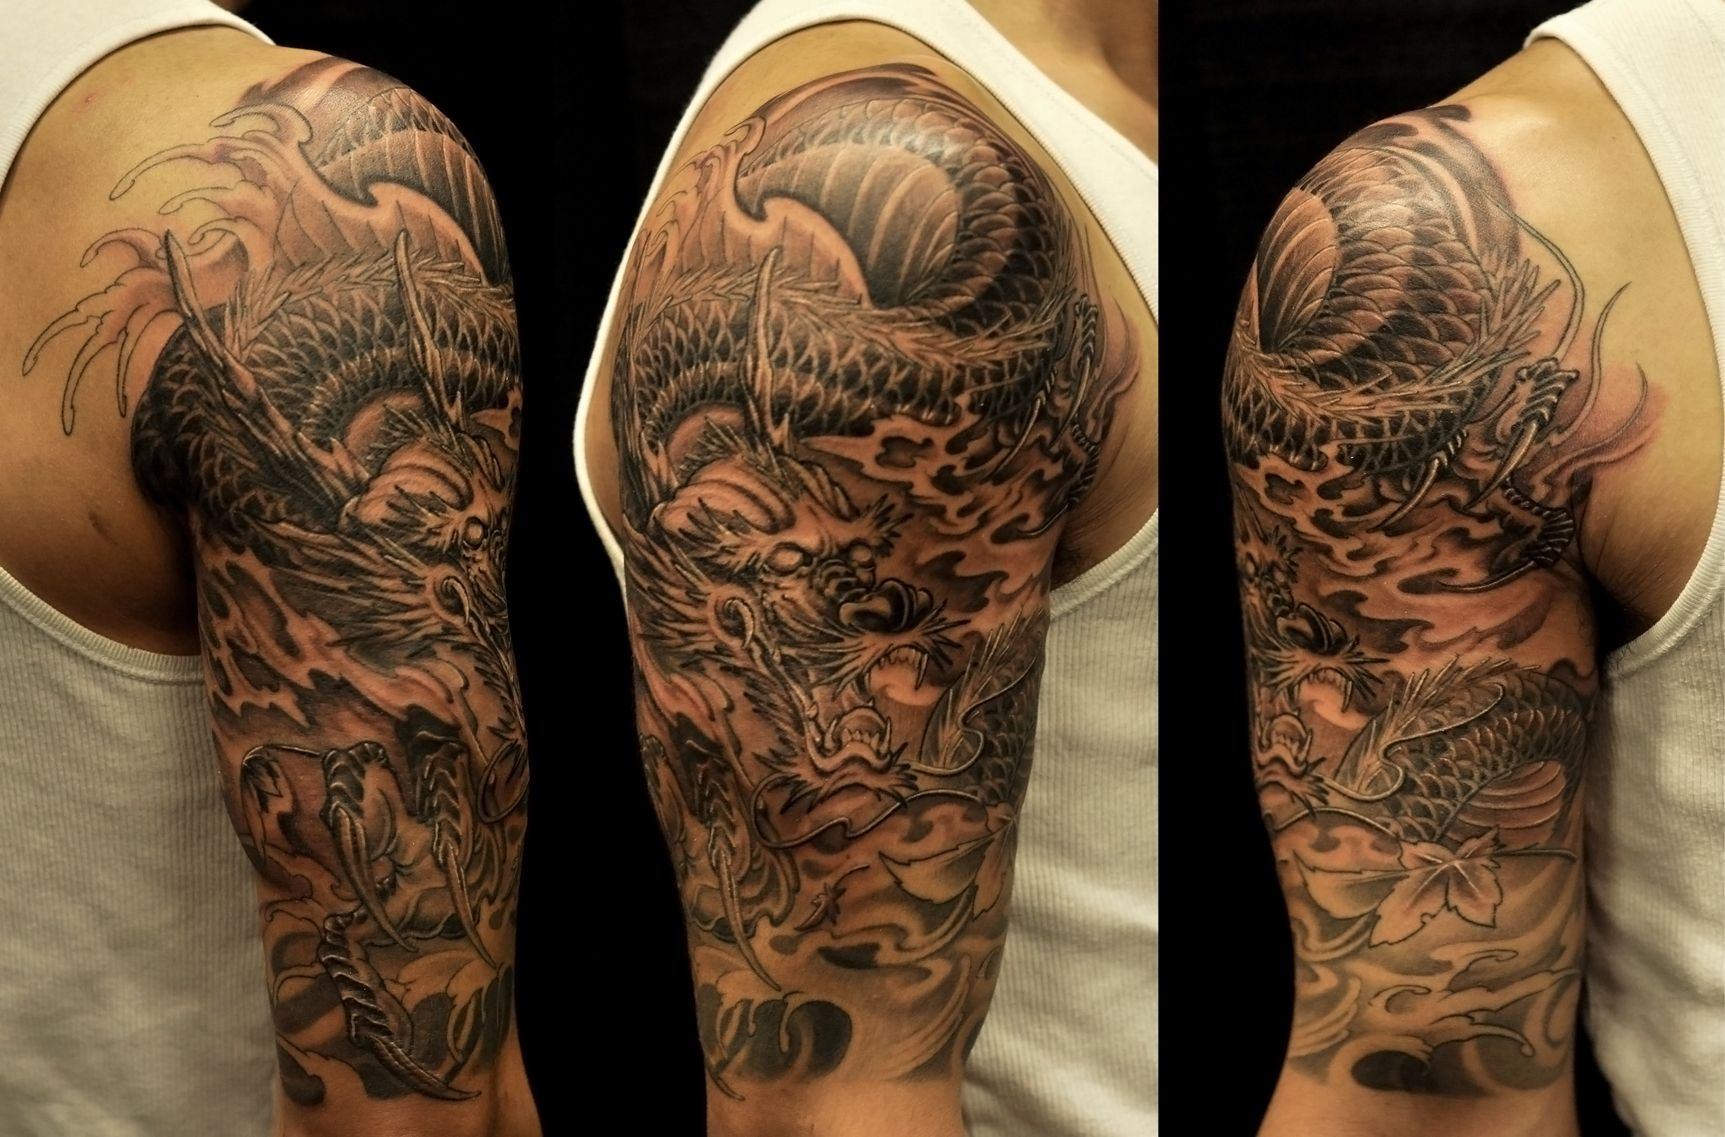 Half Sleeves Tattoo Collection From Dragon Tattoo Ideas Description intended for size 1725 X 1137